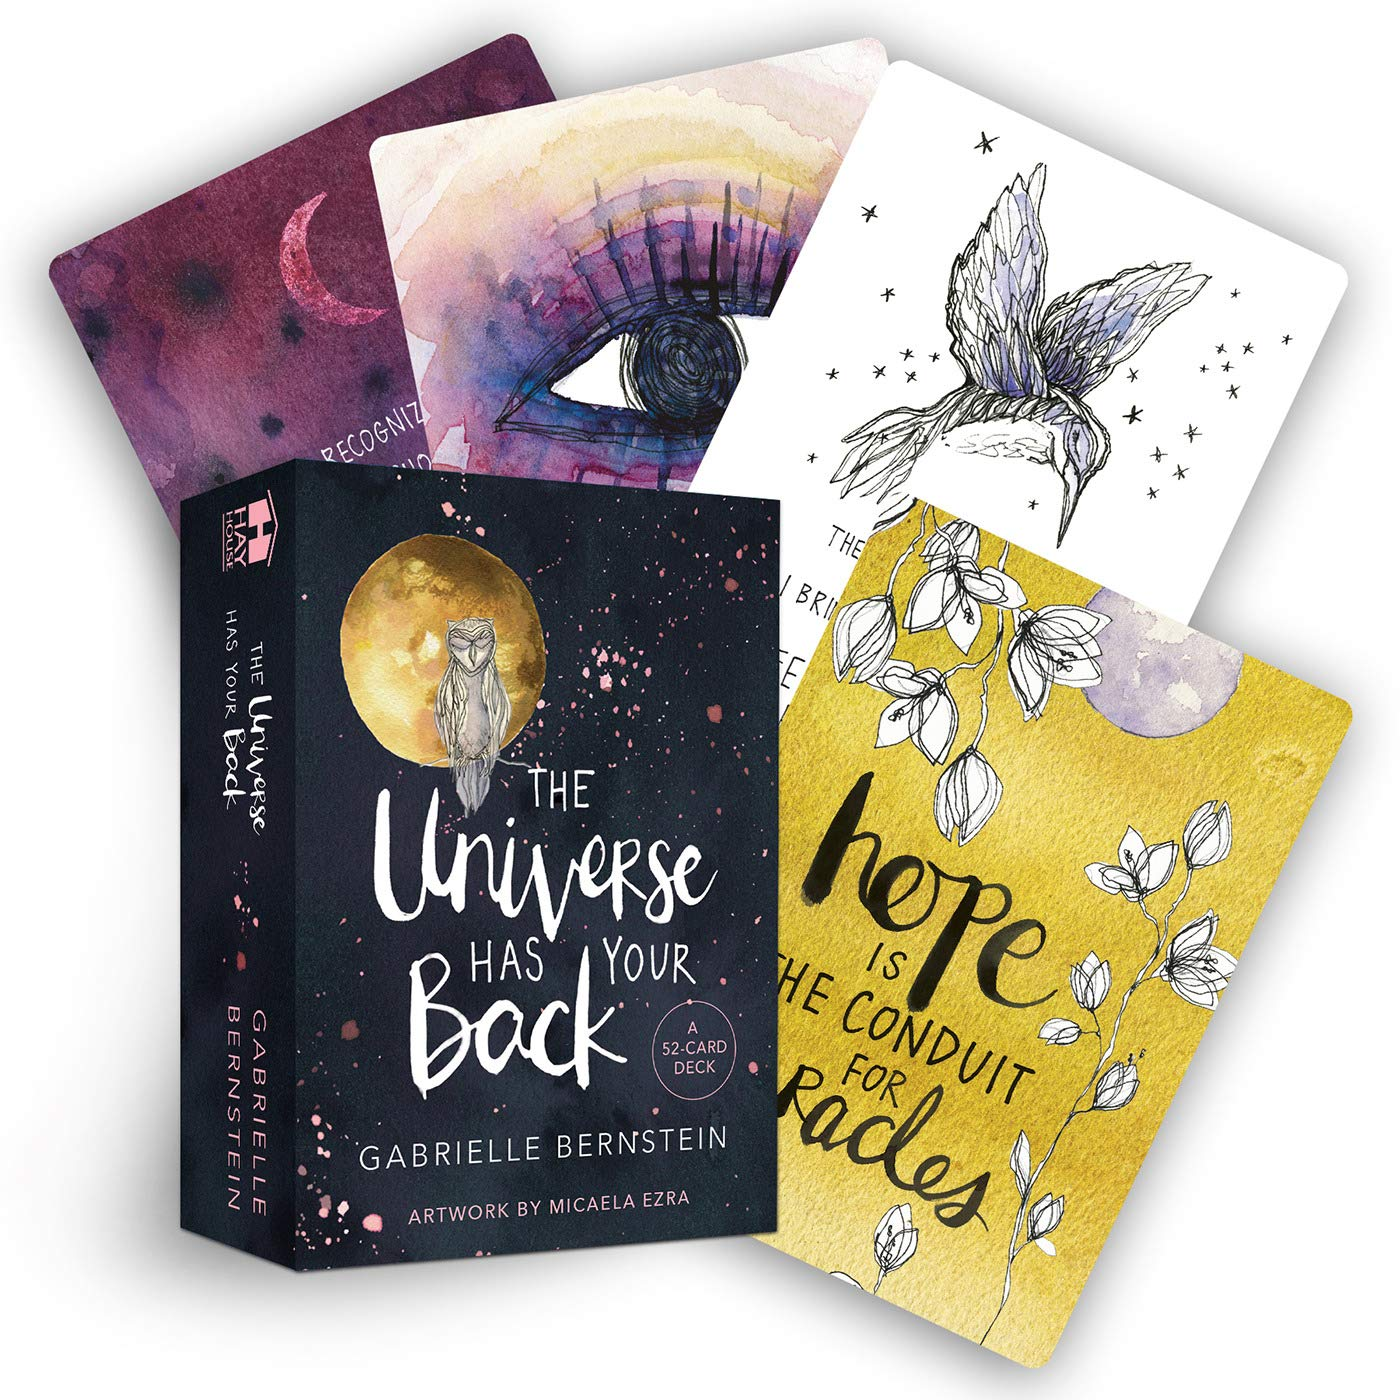 The Universe Has Your Back, a 52 Card Deck